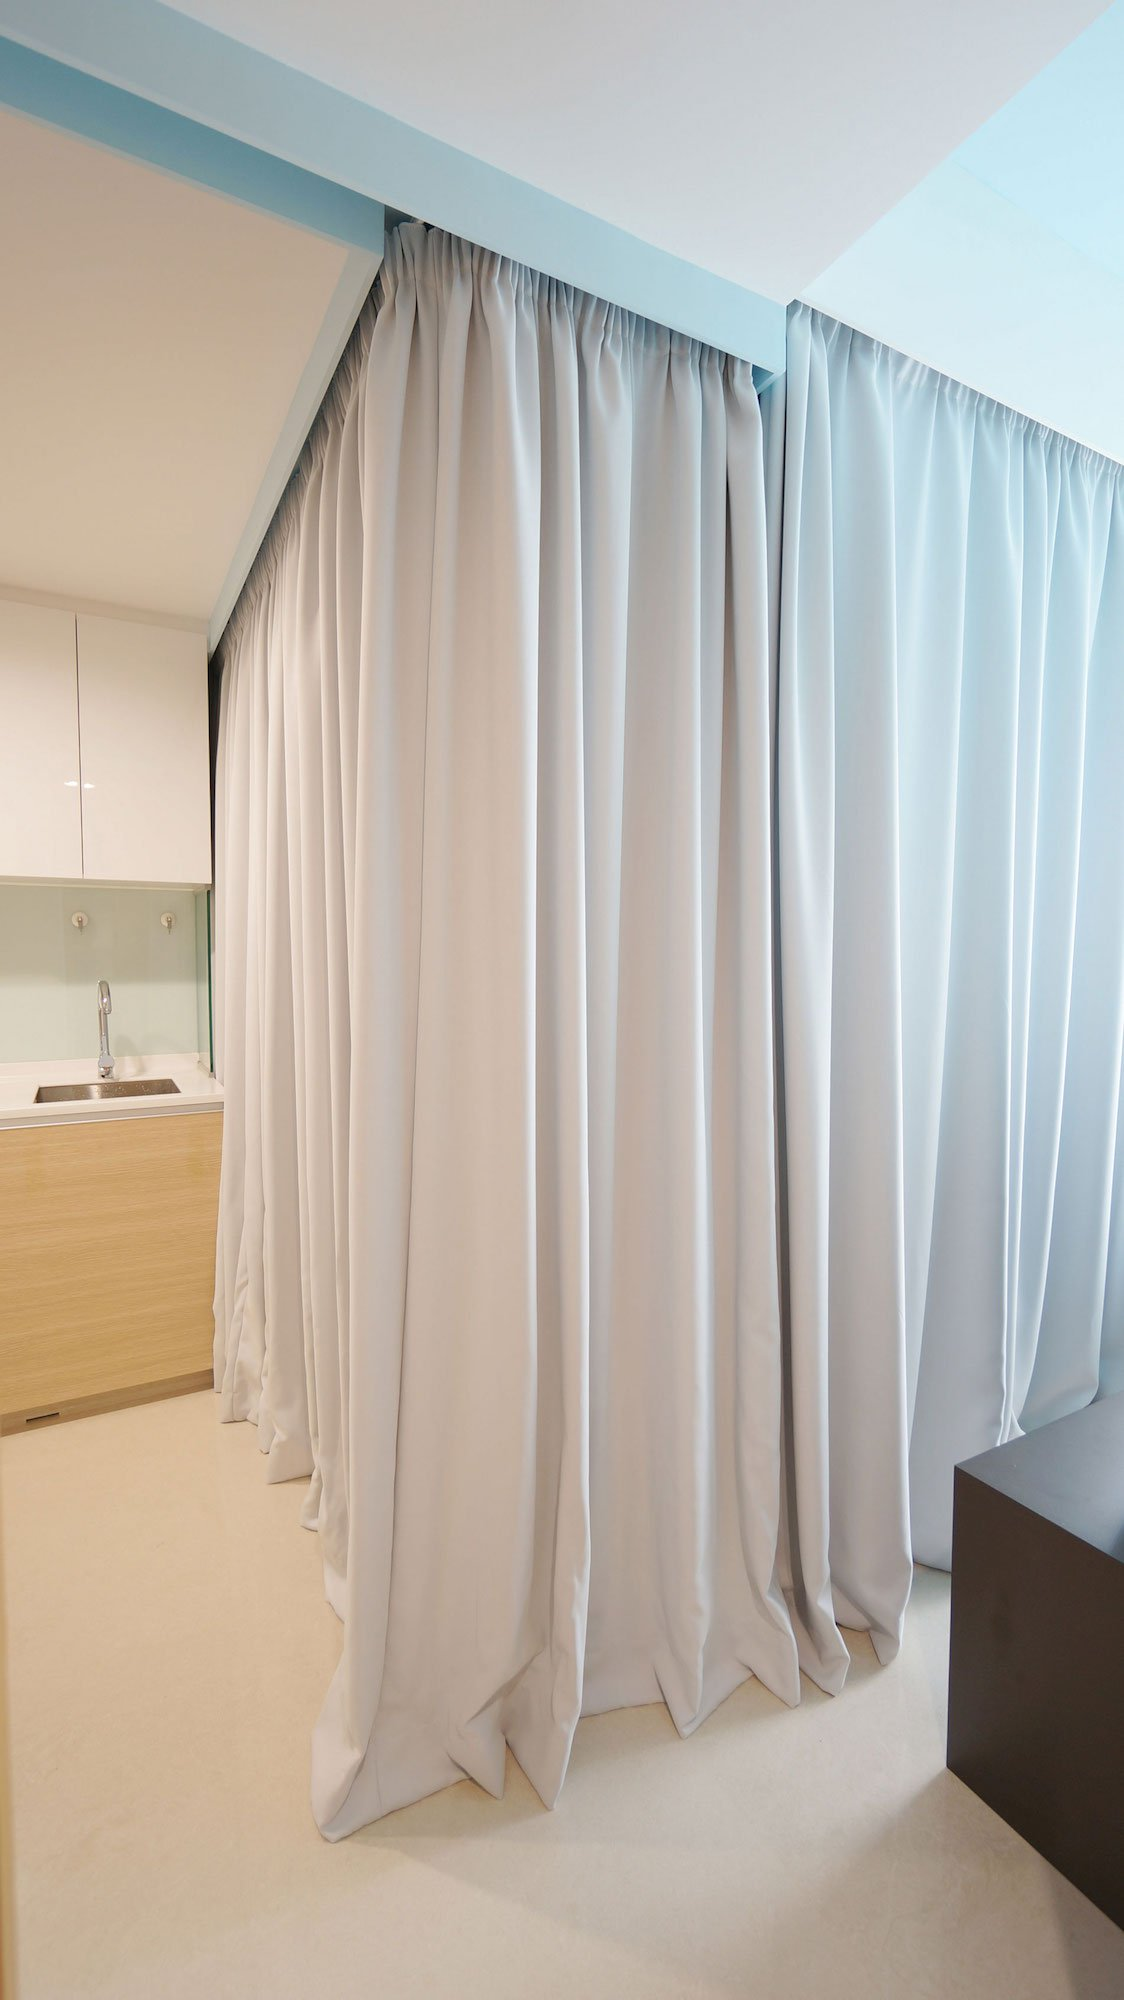 Curtain-Apartment-03